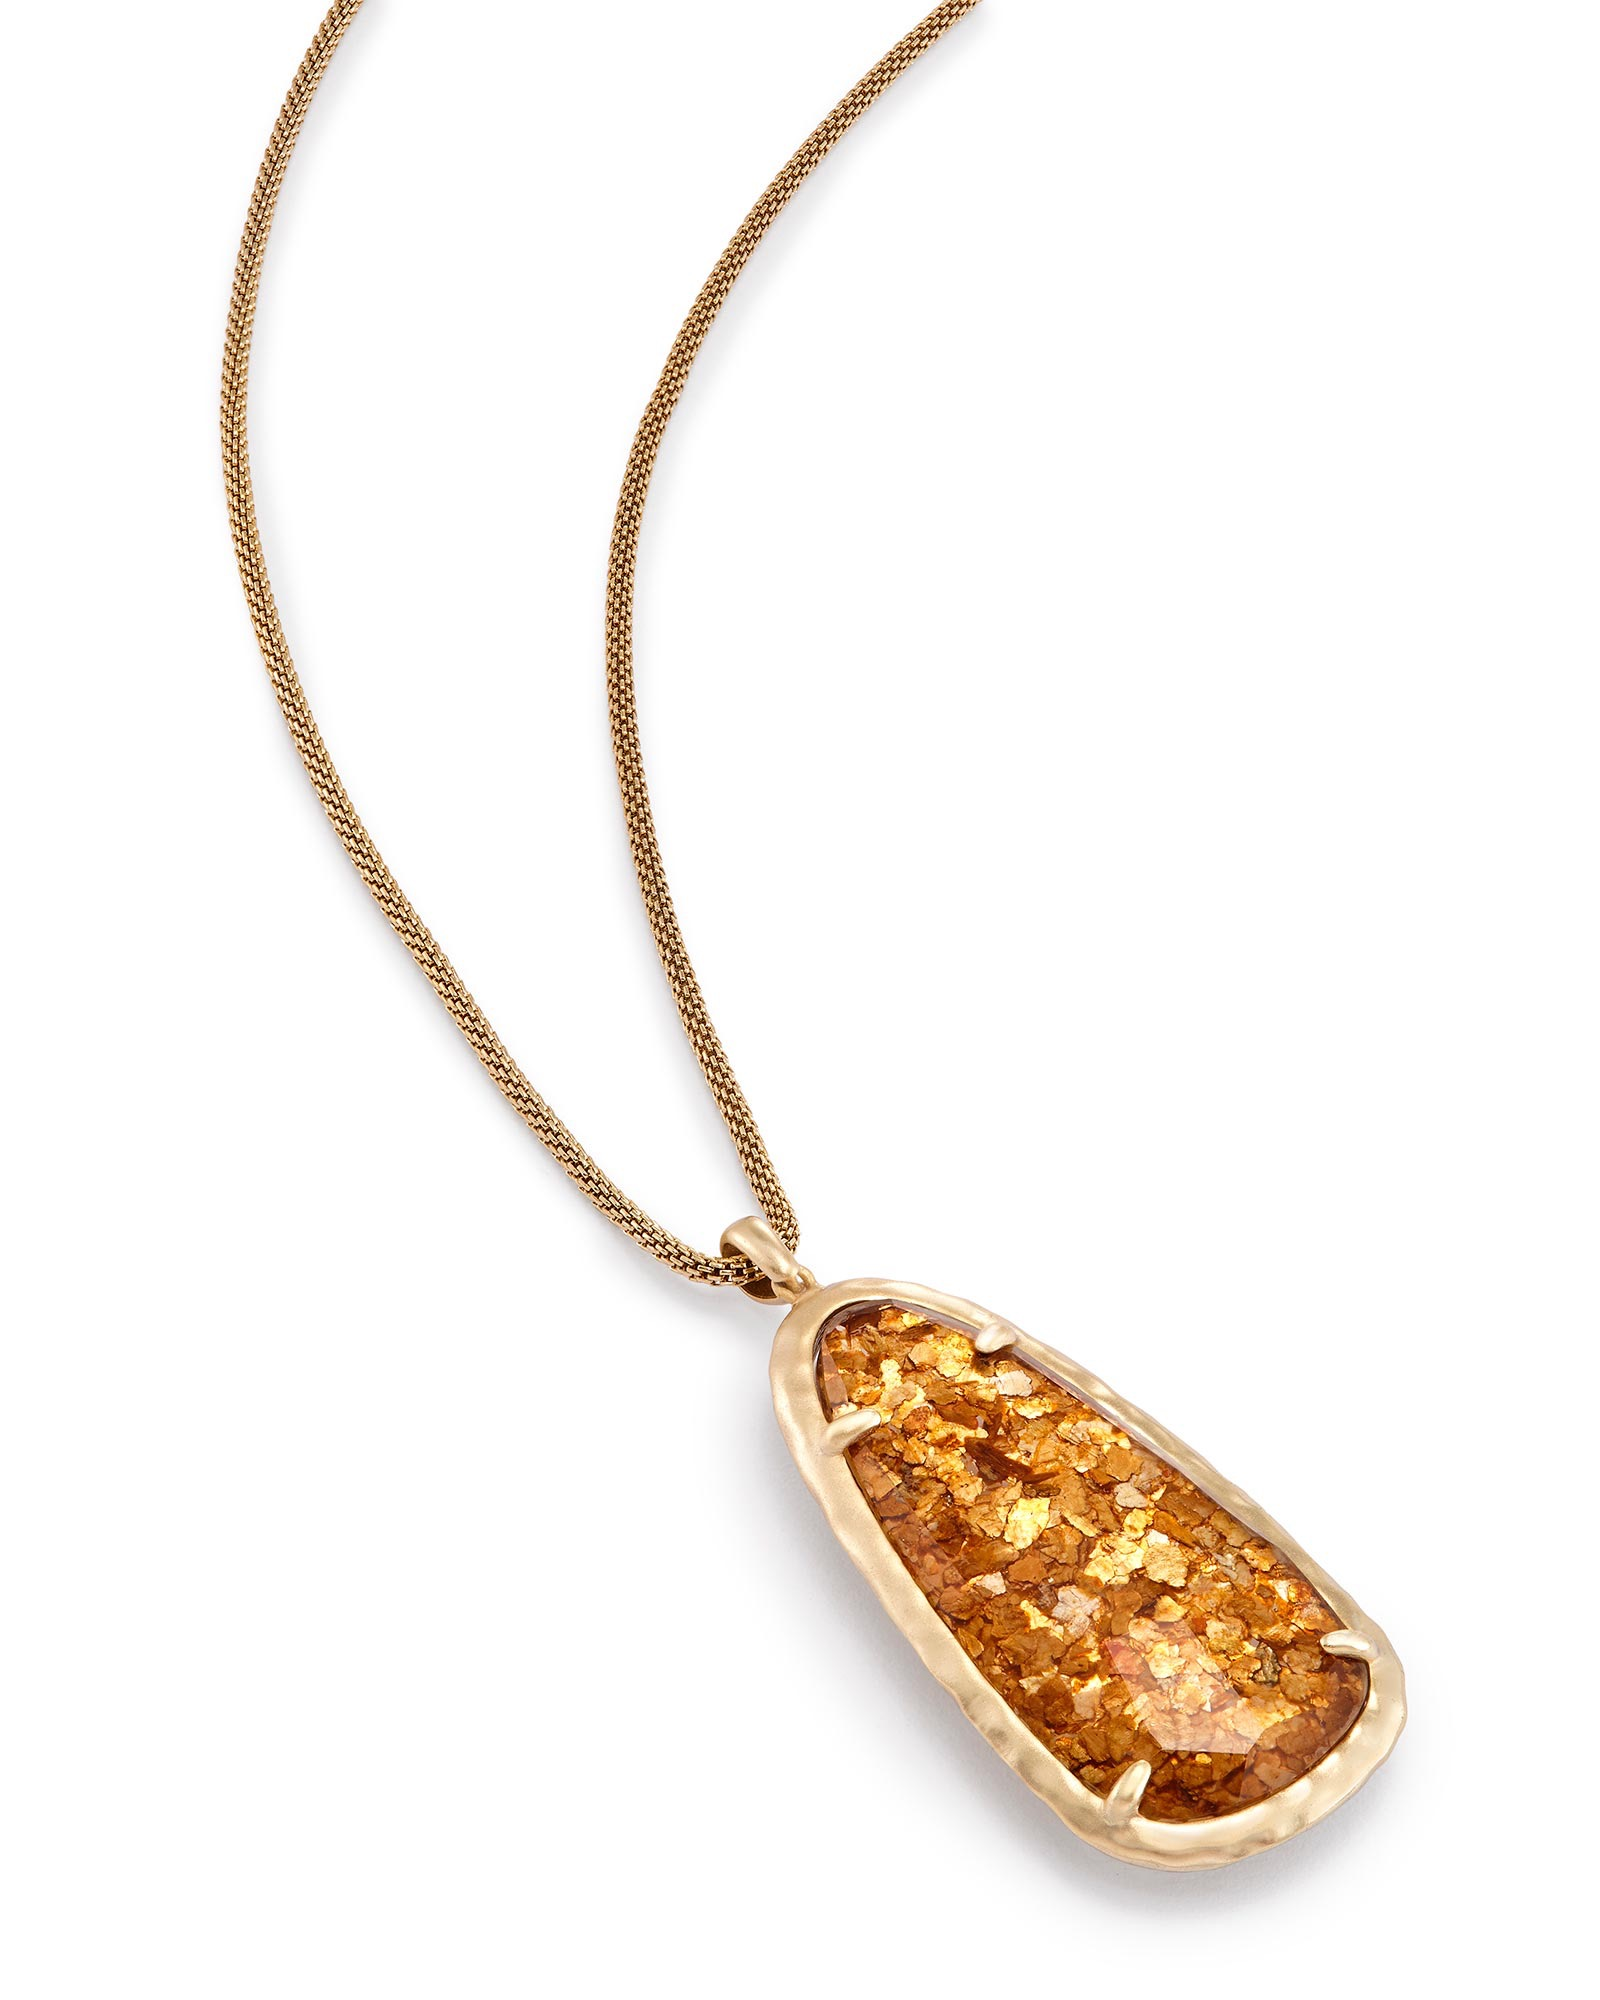 Saylor Long Pendant Necklace in Crushed Gold Mica